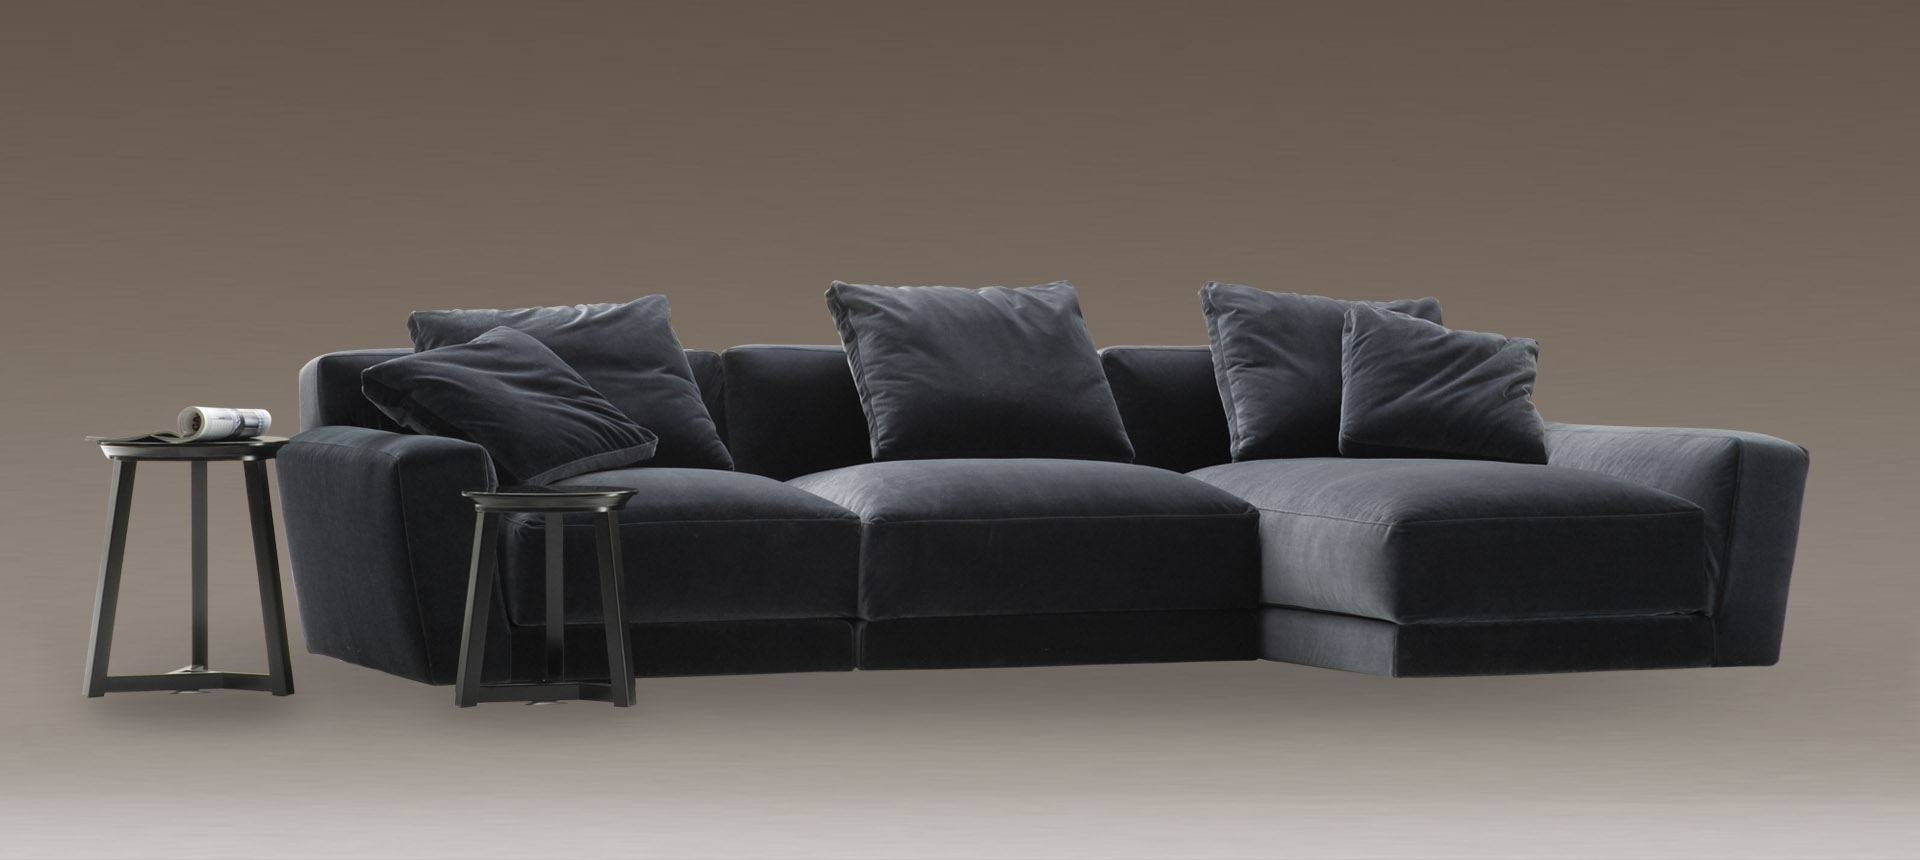 Camerich Sofe I Lampe. Sofa with regard to Camerich Sofas (Image 8 of 15)